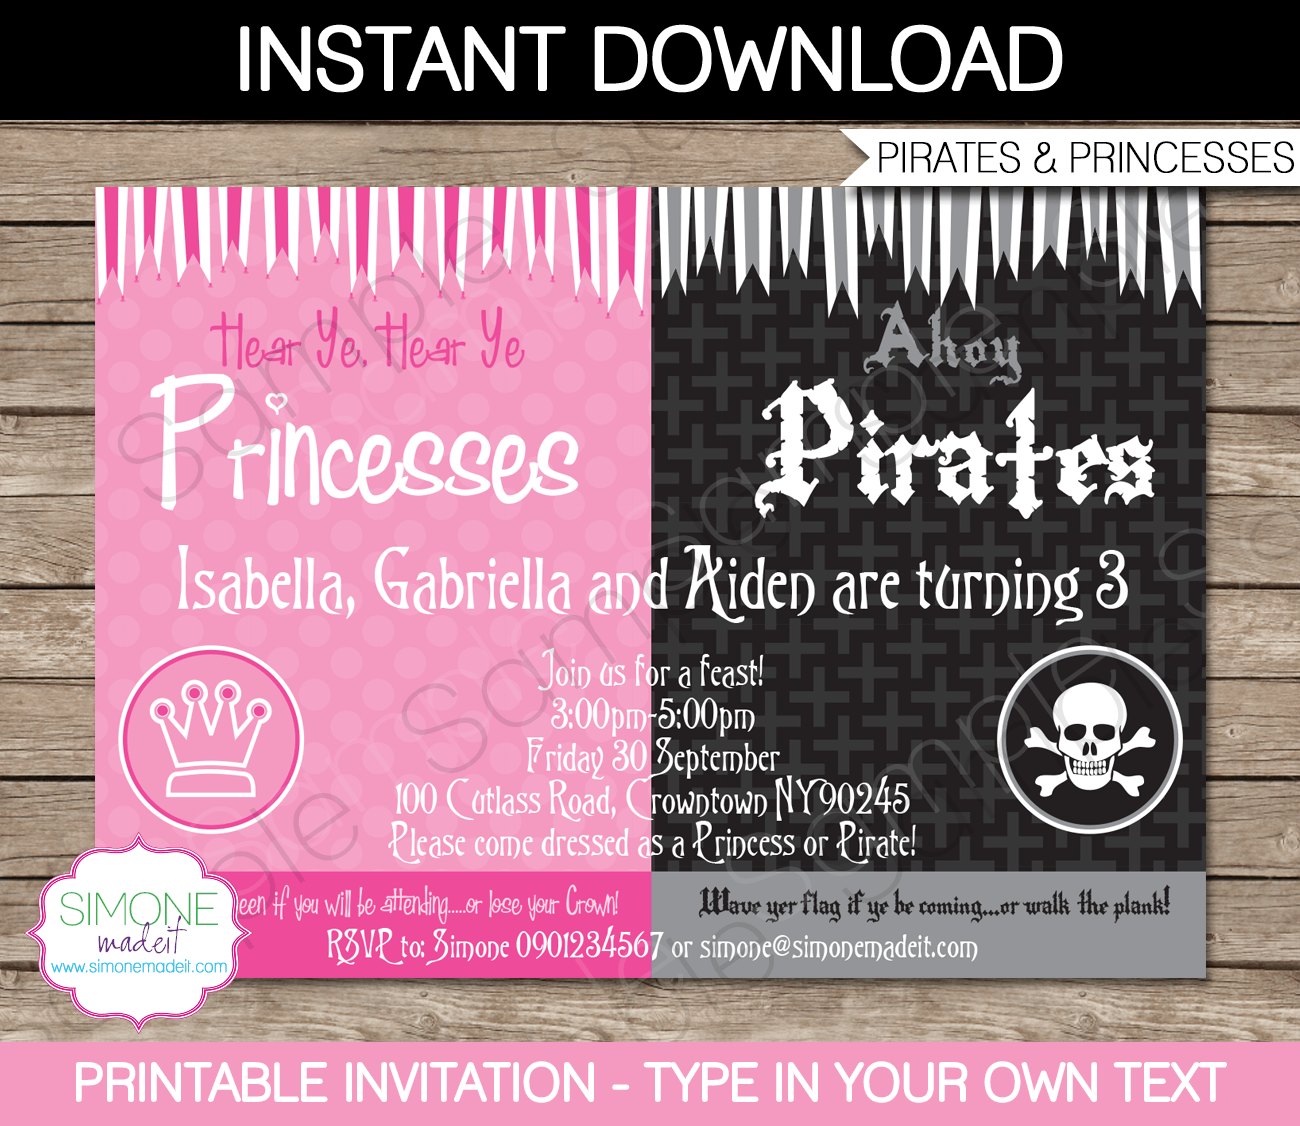 Pirate and princess party printables invitations princess pirate and princess party printables invitations filmwisefo Choice Image